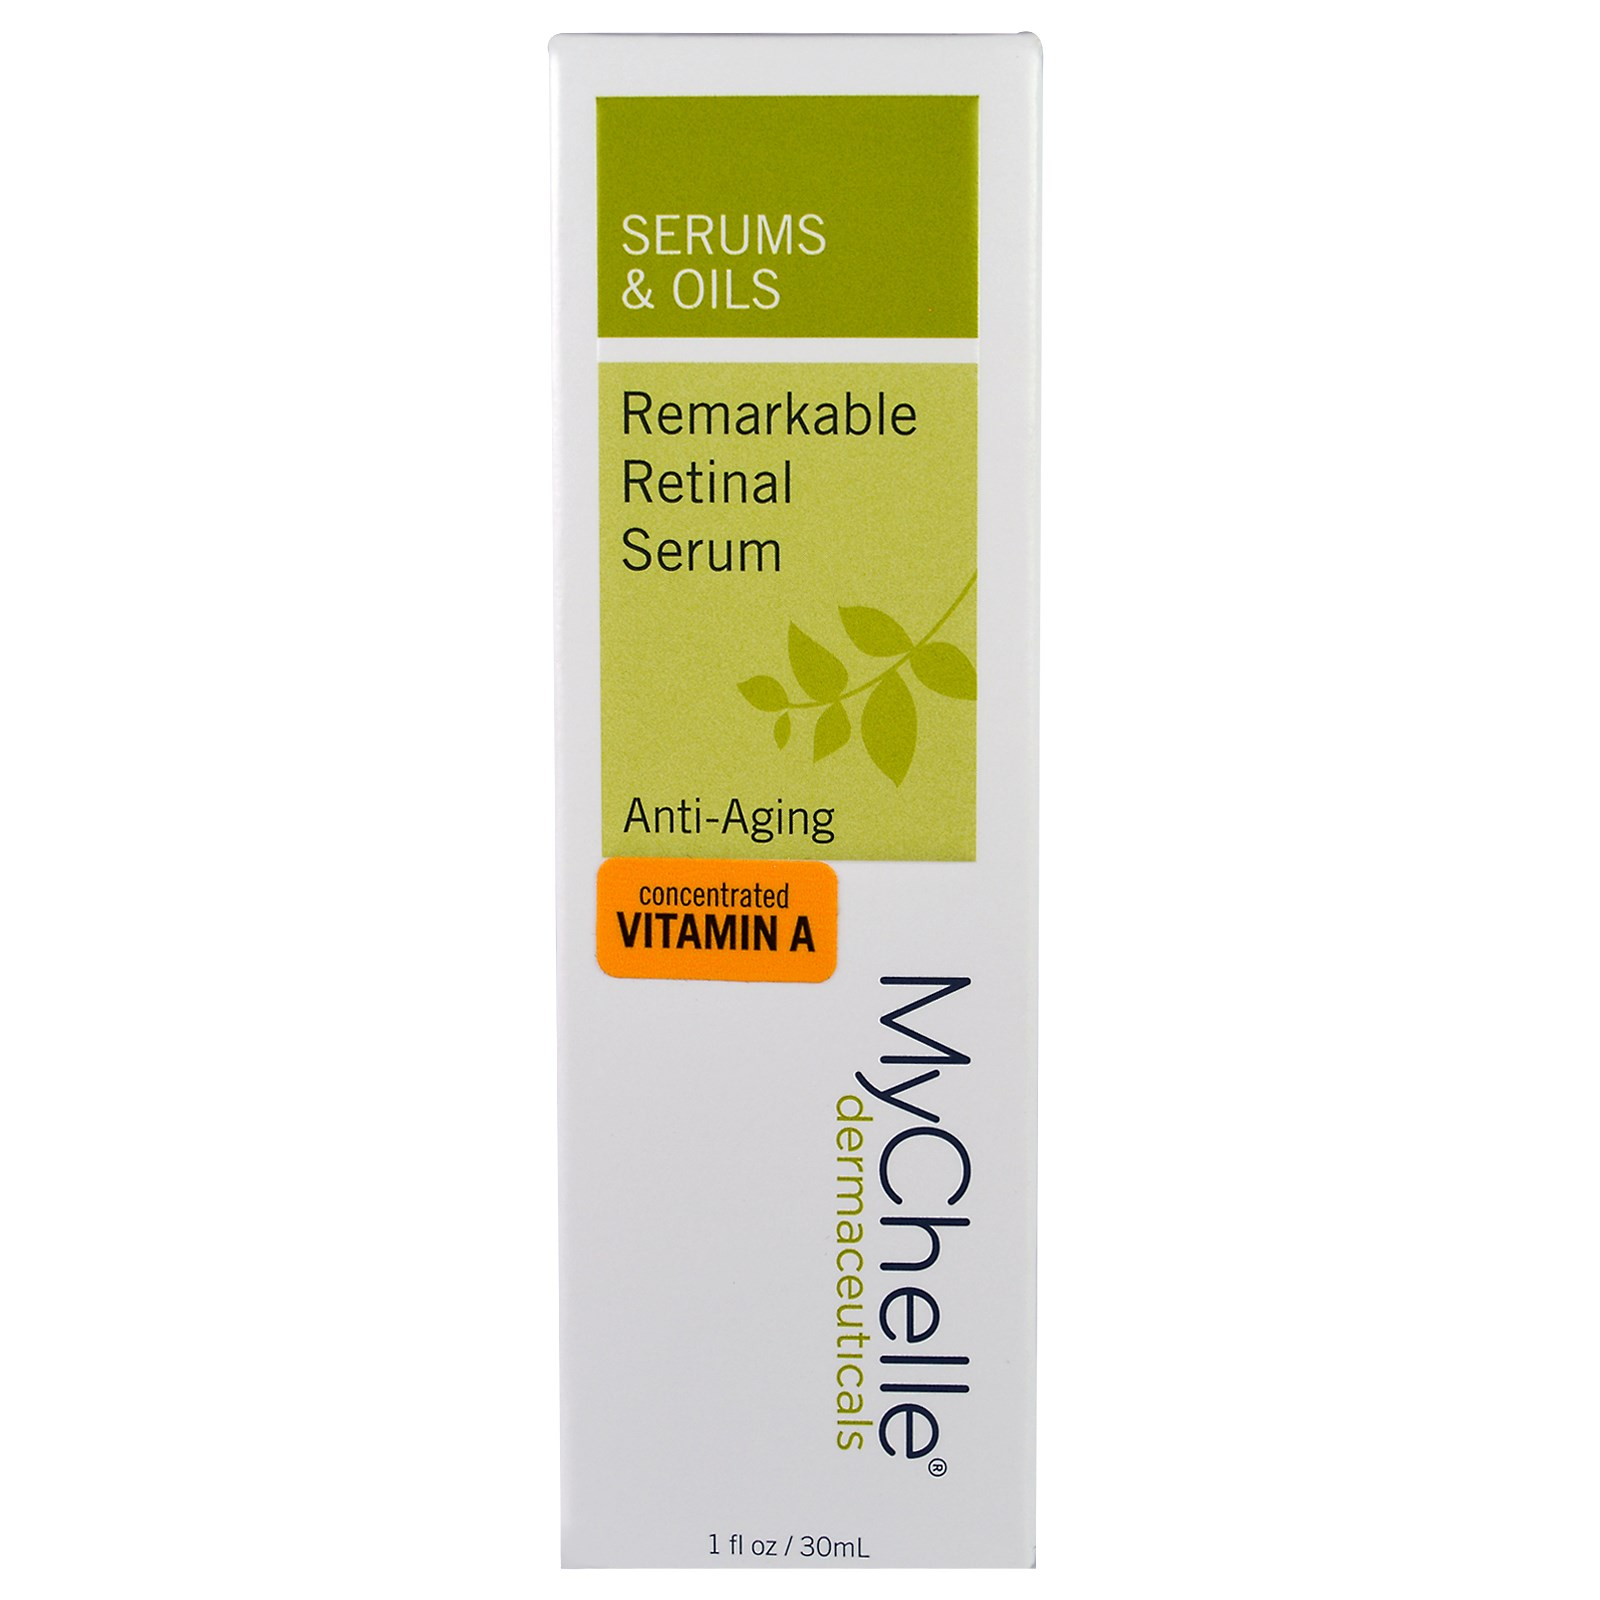 MyChelle Dermaceuticals MyChelle  Vitamin A, 1 oz Pack of 30, The Elixir Beauty MJ Korean Cosmetic Full Face Collagen Green Tea Essence Mask Pack Sheet for Vitality, Clarity, Mosturizing, Relaxing